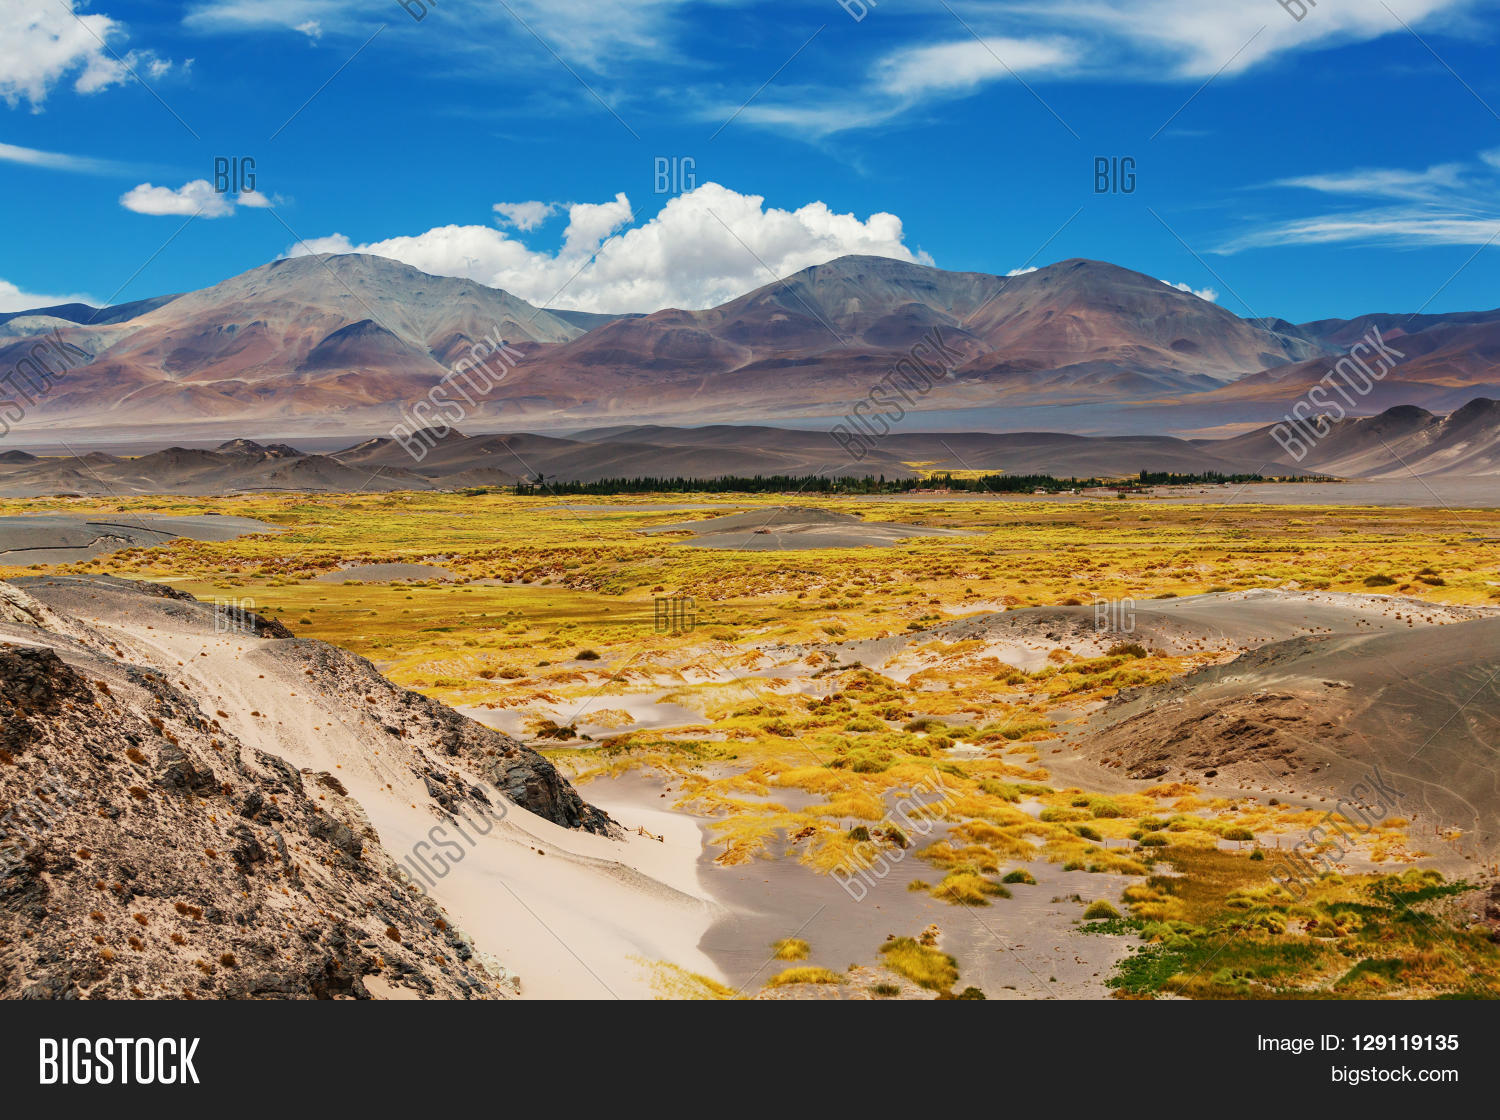 Scenic landscapes of Northern Argentina